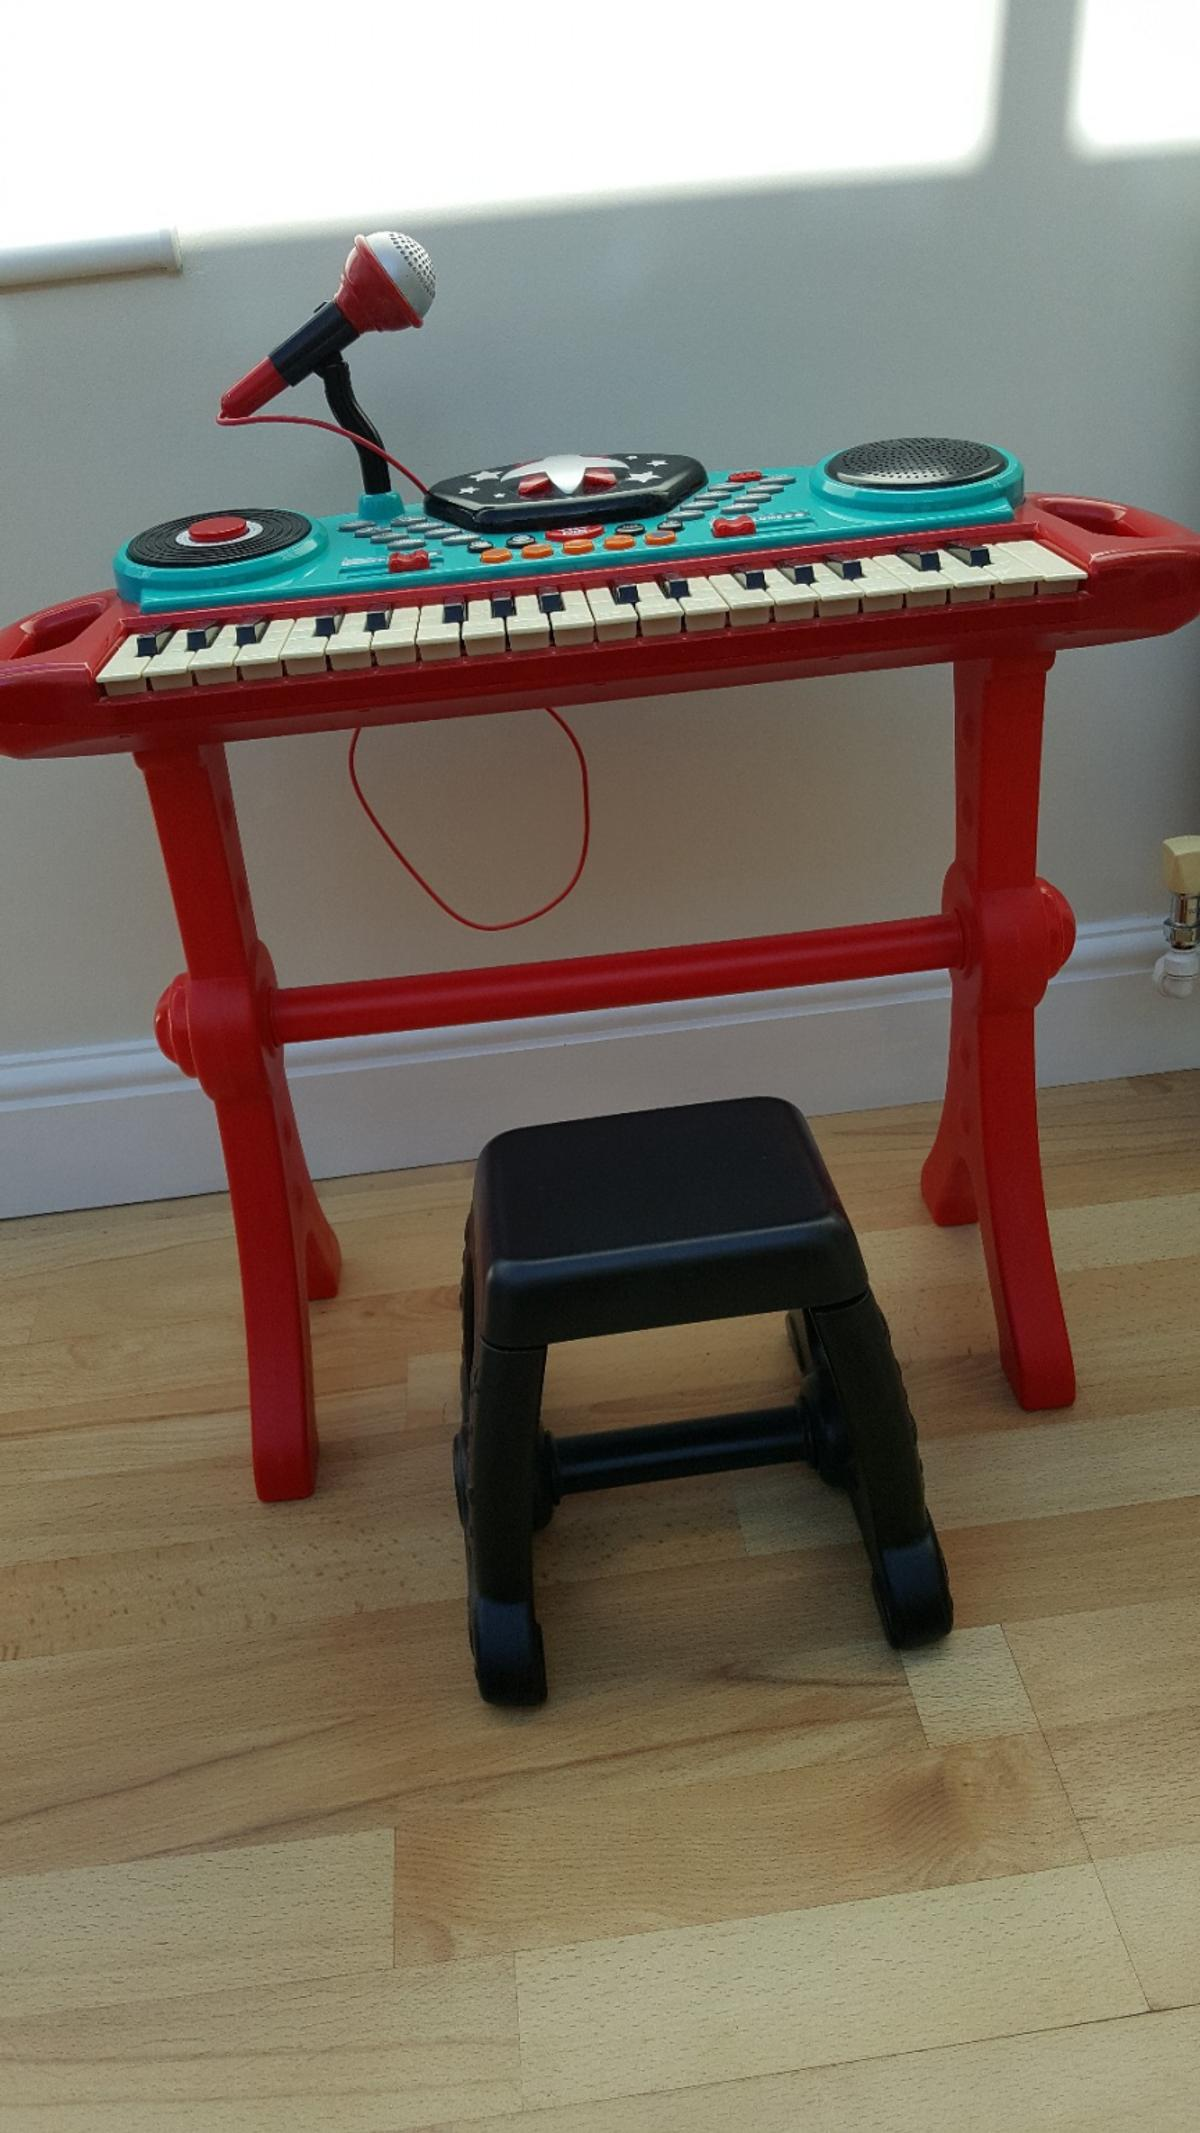 Miraculous Elc Childs Piano Keyboard With Stool Machost Co Dining Chair Design Ideas Machostcouk